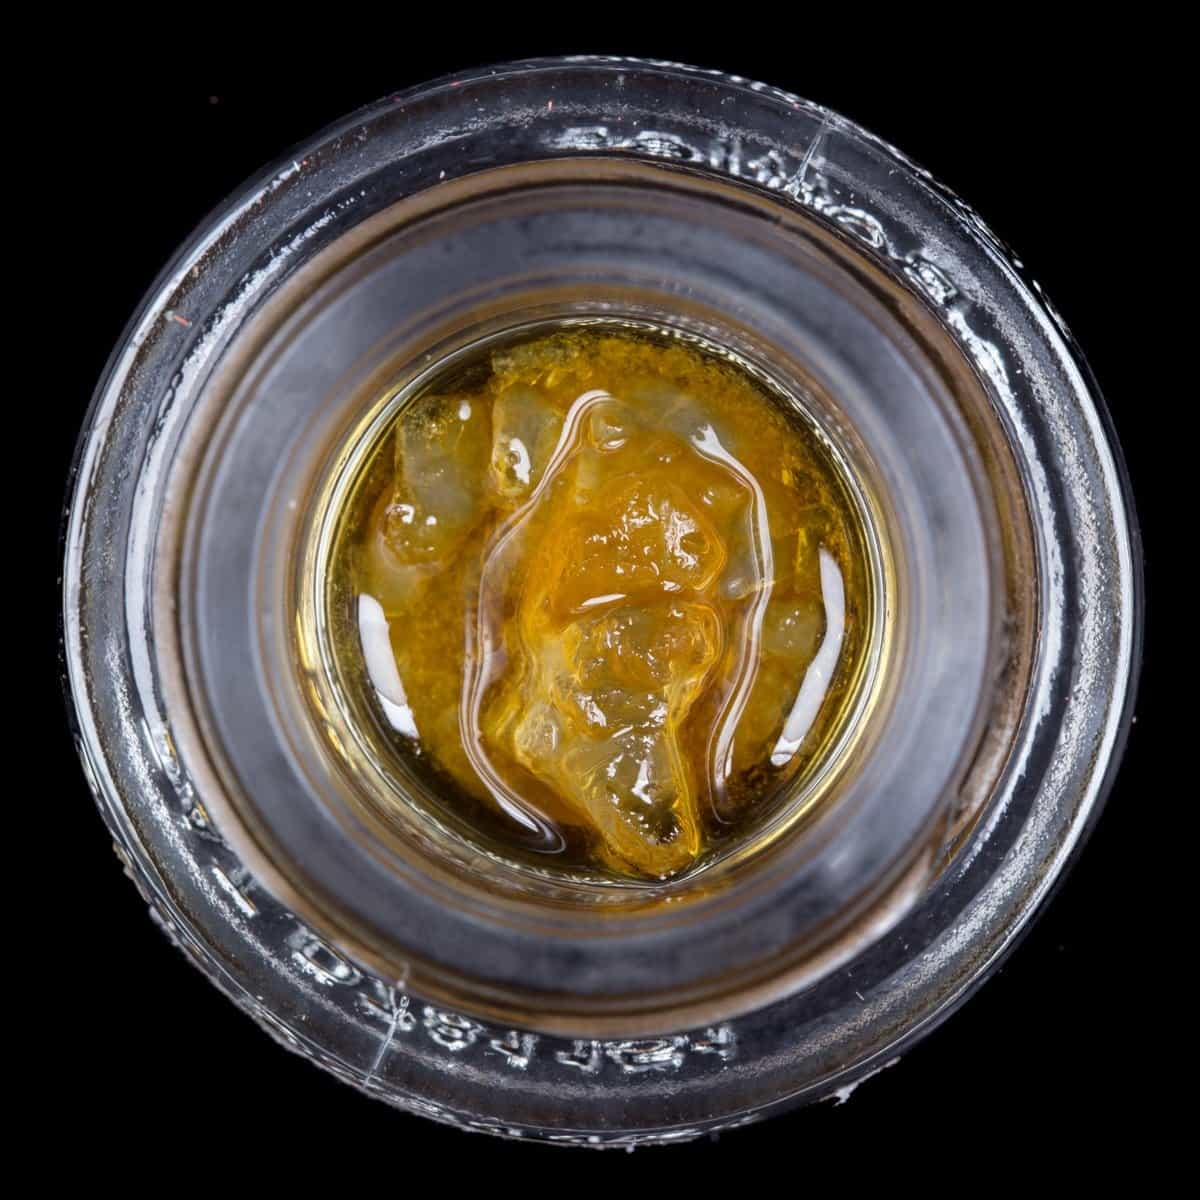 Sour Chem Full Spectrum Oil Sauce 1g - 710 Labs